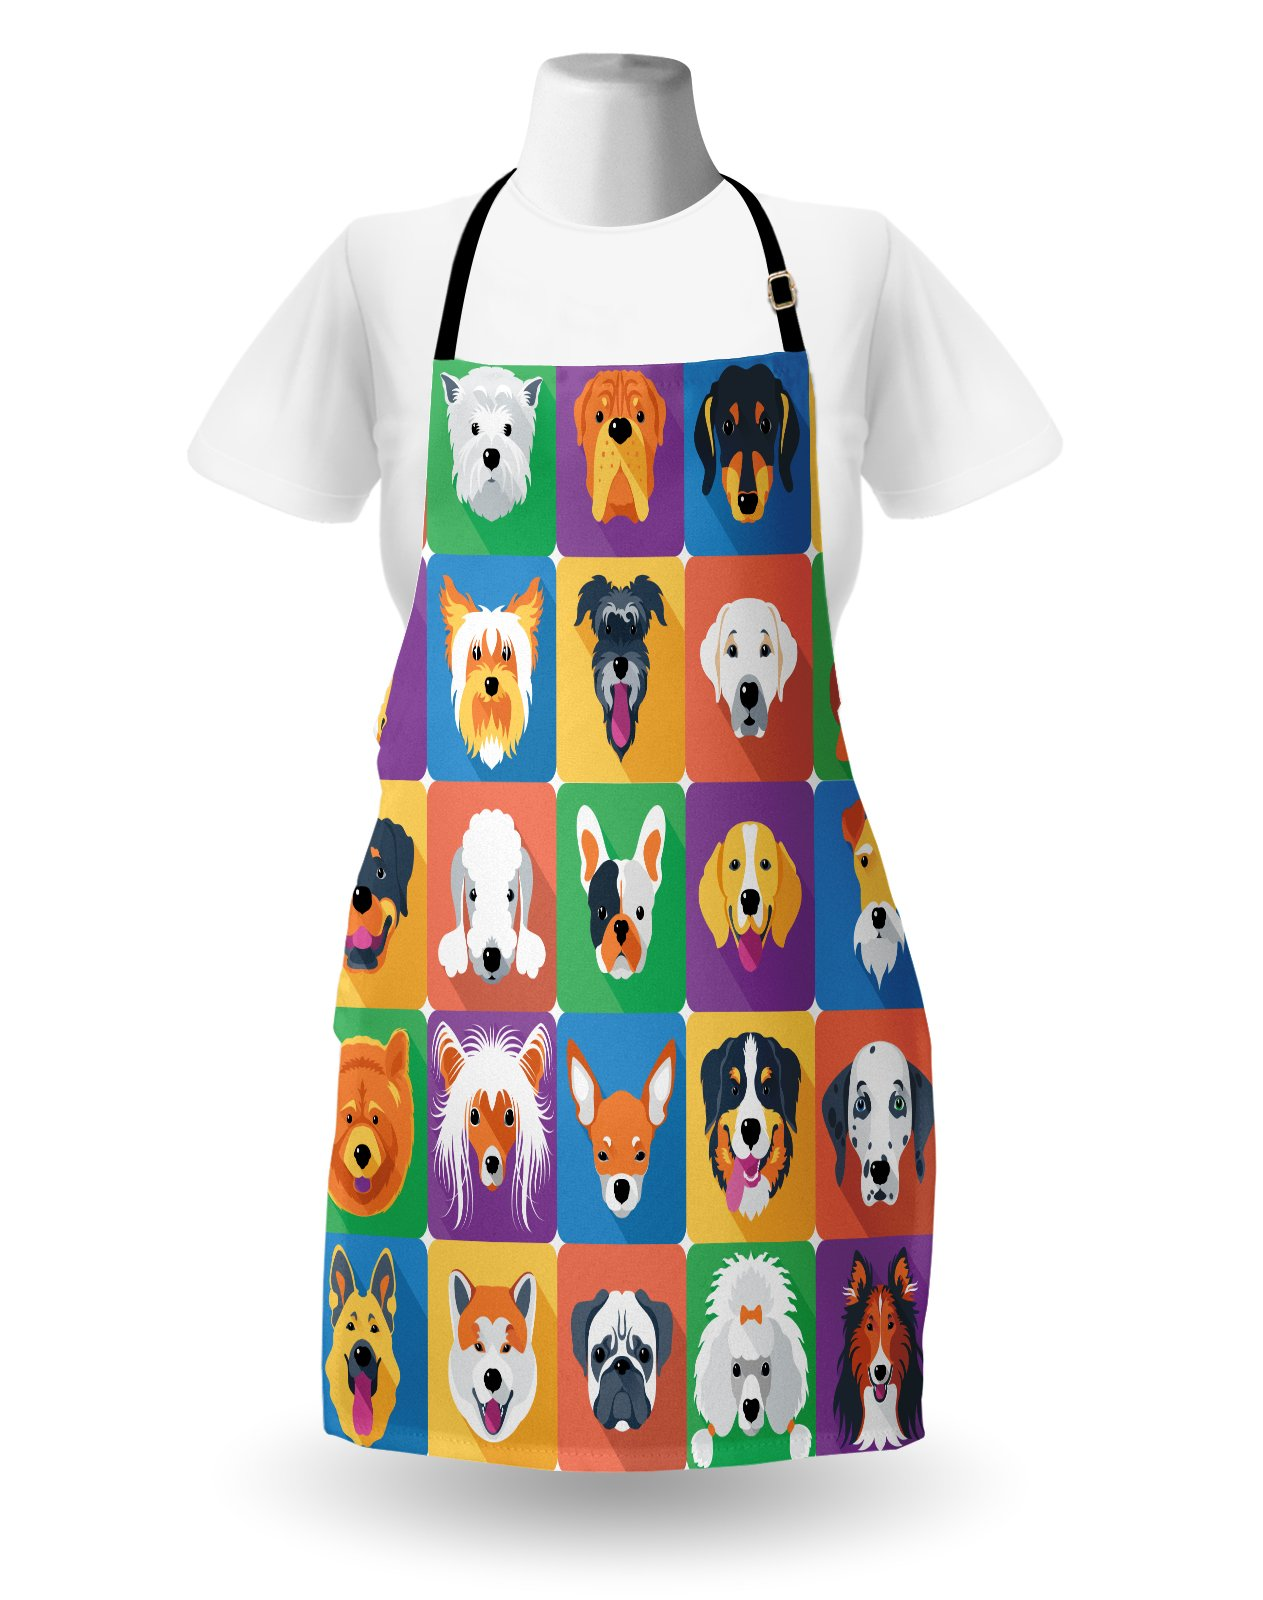 Ambesonne Dog Apron, Dog Breeds Profiles Pets Shepherd Terrier Labrador Domestic Animals Illustration, Unisex Kitchen Bib Apron with Adjustable Neck for Cooking Baking Gardening, Purple Green by Ambesonne (Image #2)